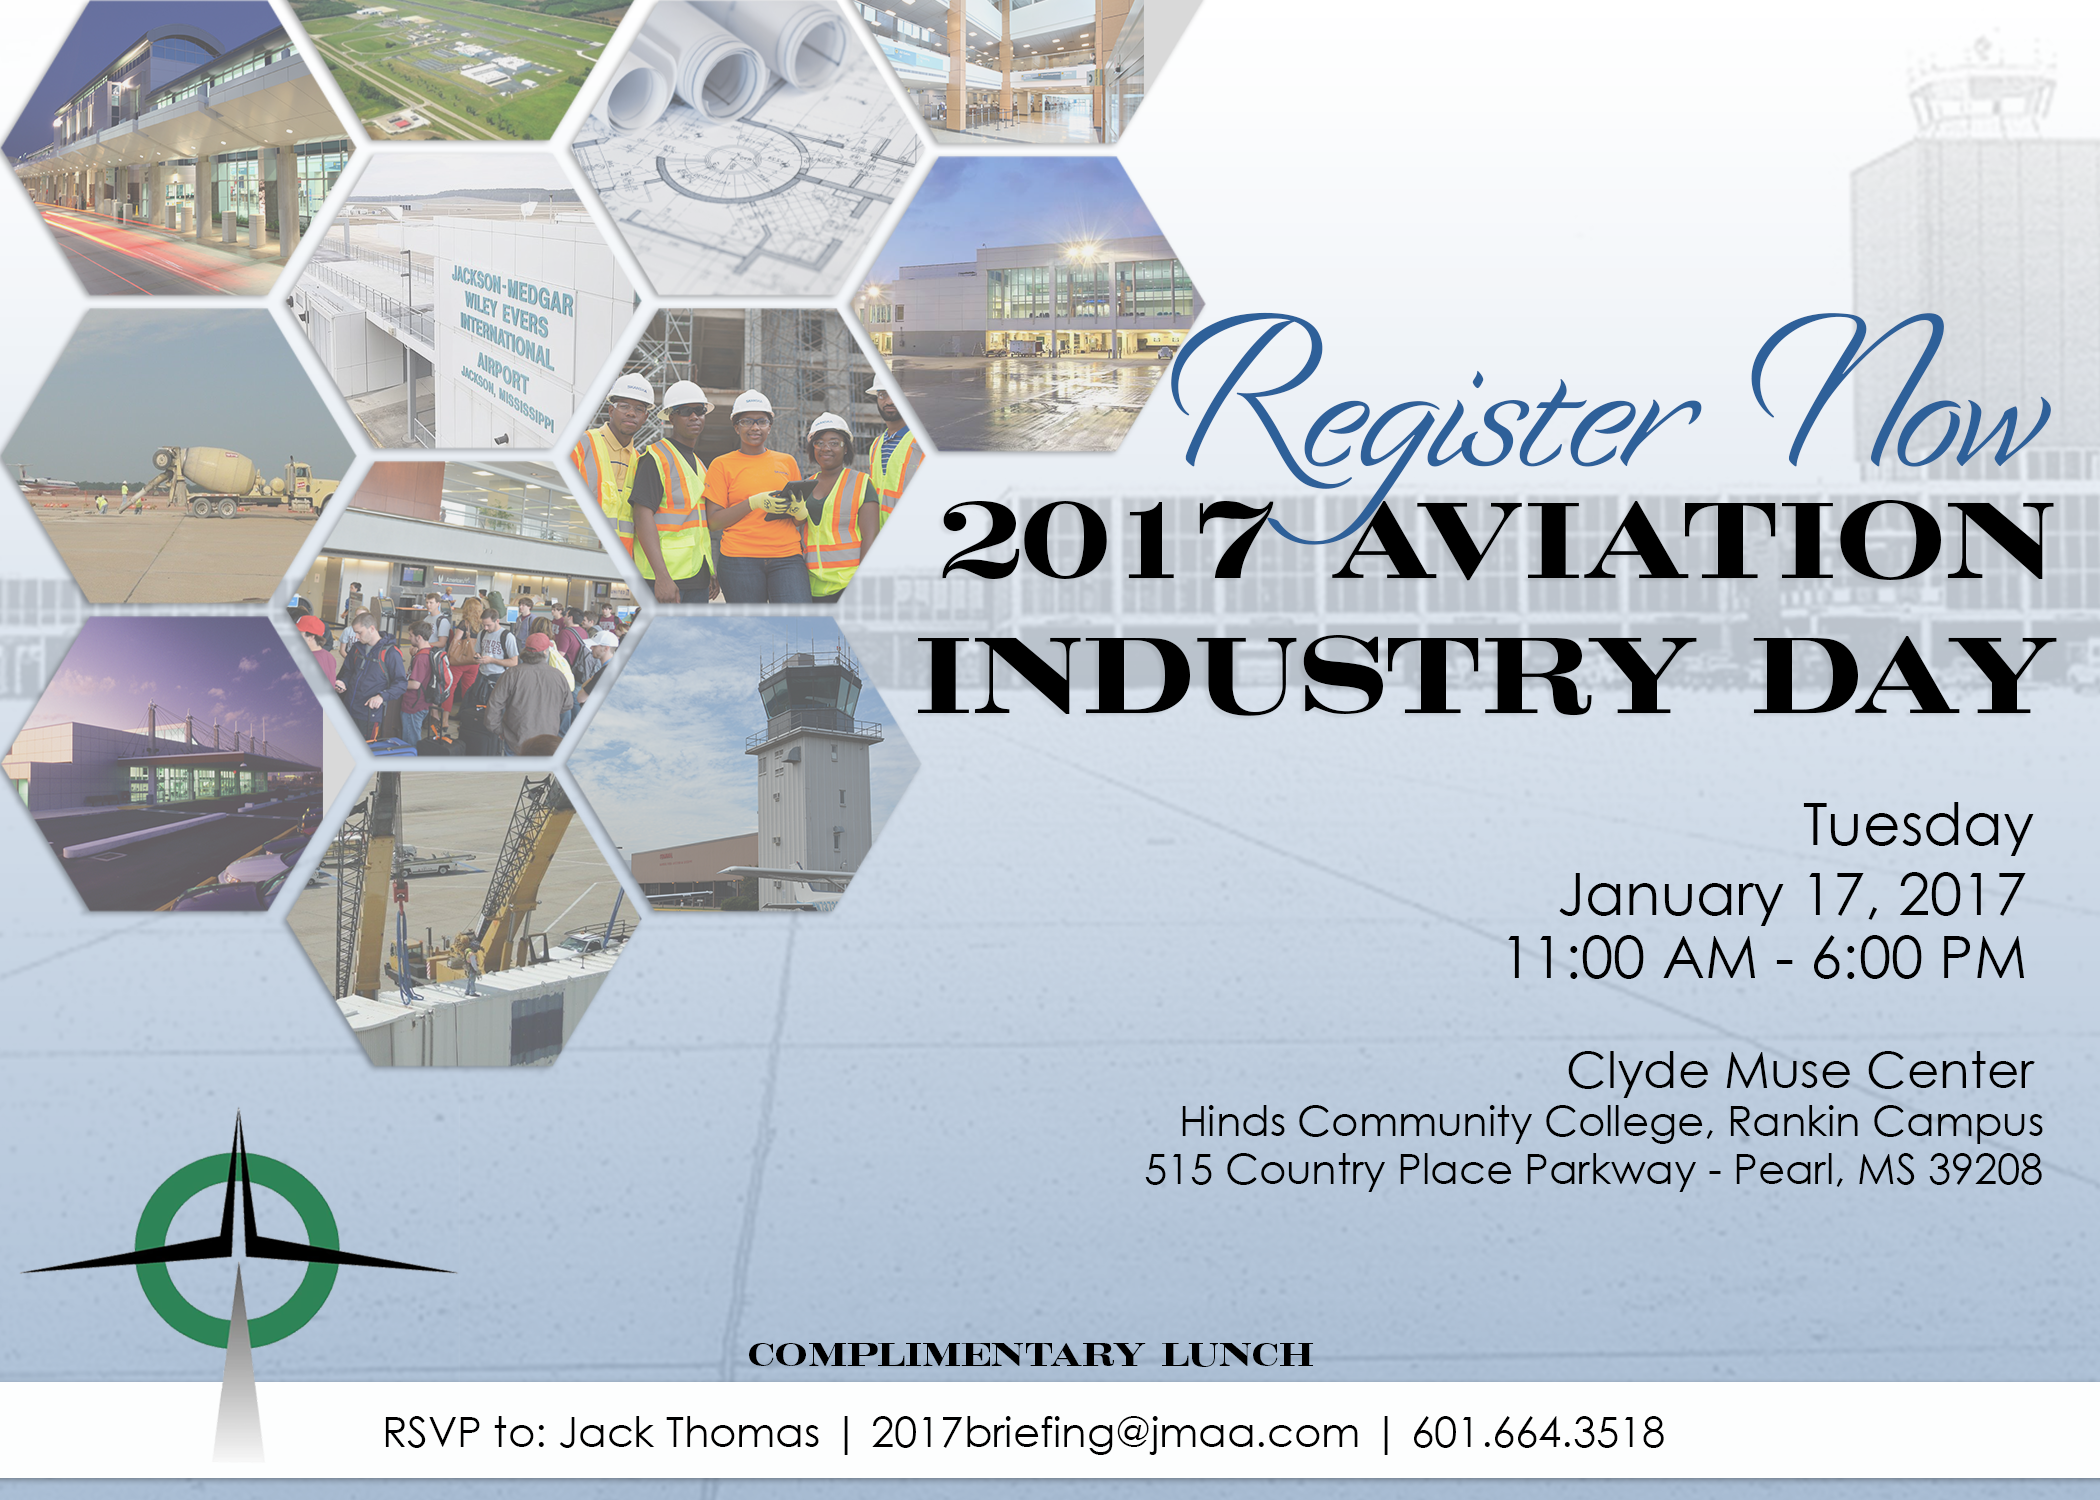 industry-day-register-now